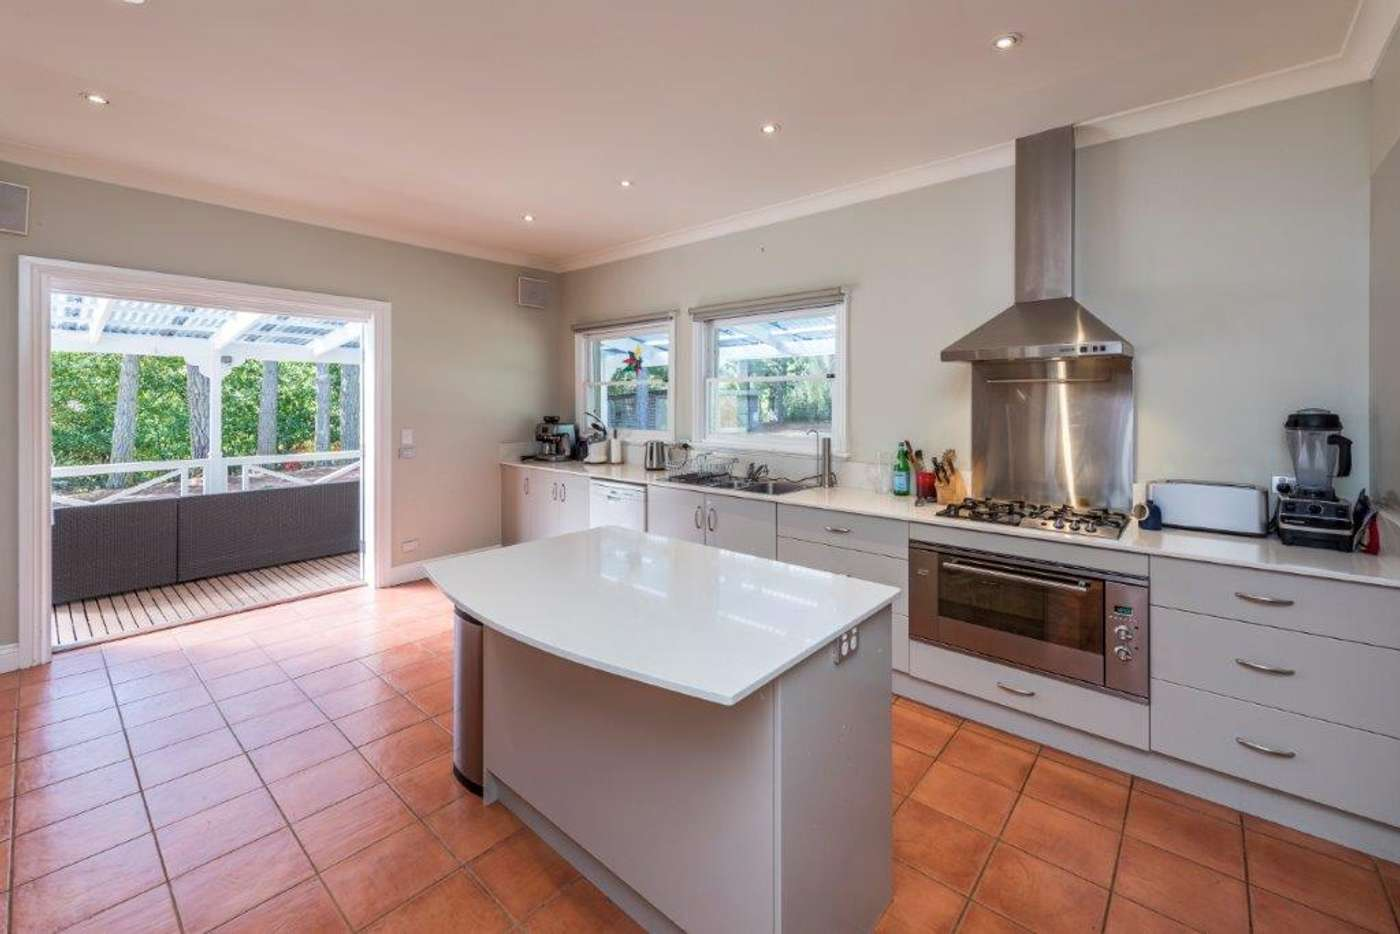 Sixth view of Homely house listing, 10 St Denis Close, Burradoo NSW 2576